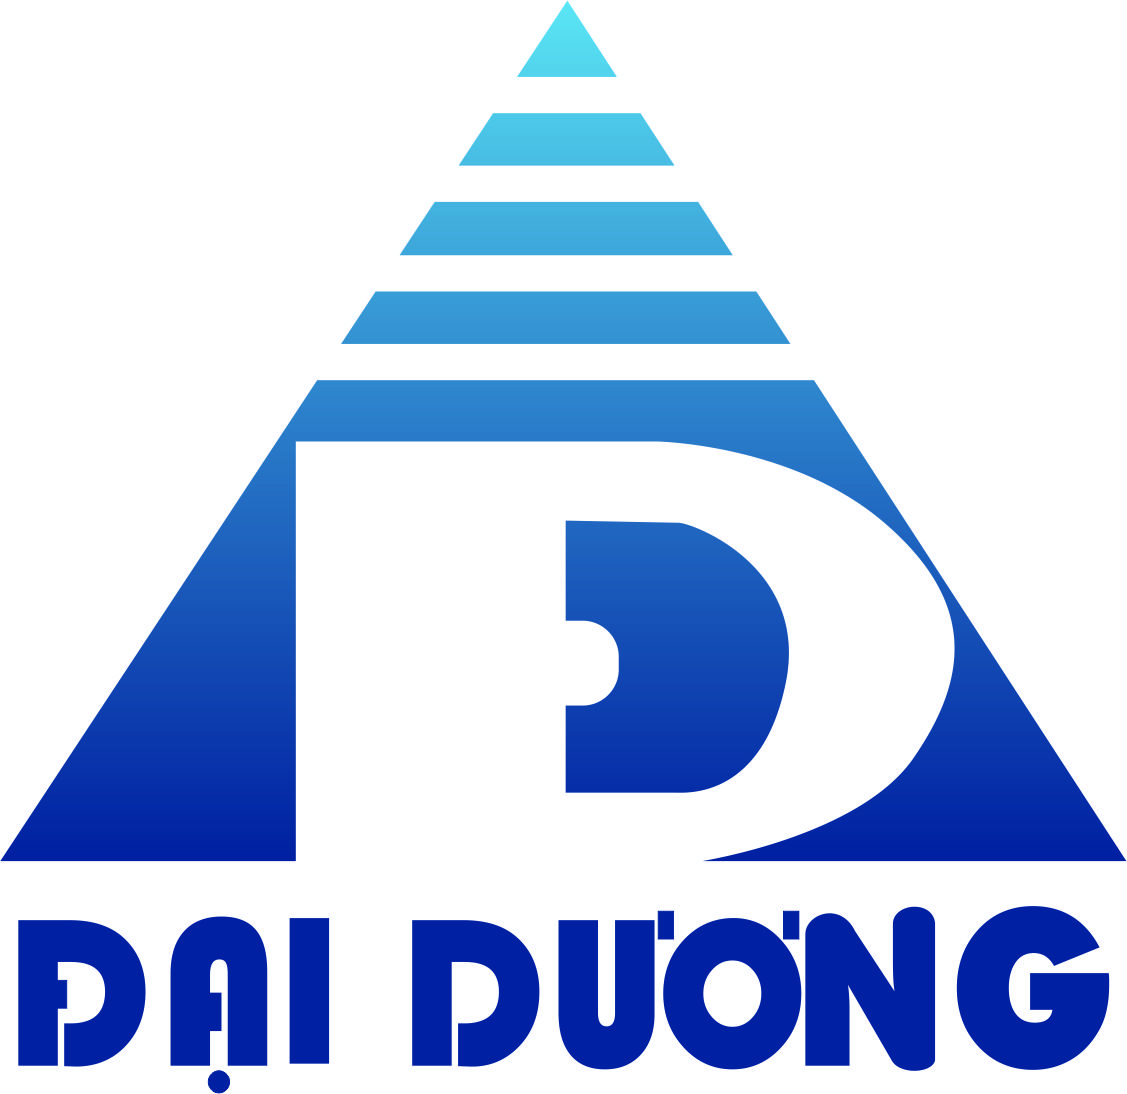 http://daiduongcompany.com.vn/ckfinder/userfiles/images/logo%20moi.jpg